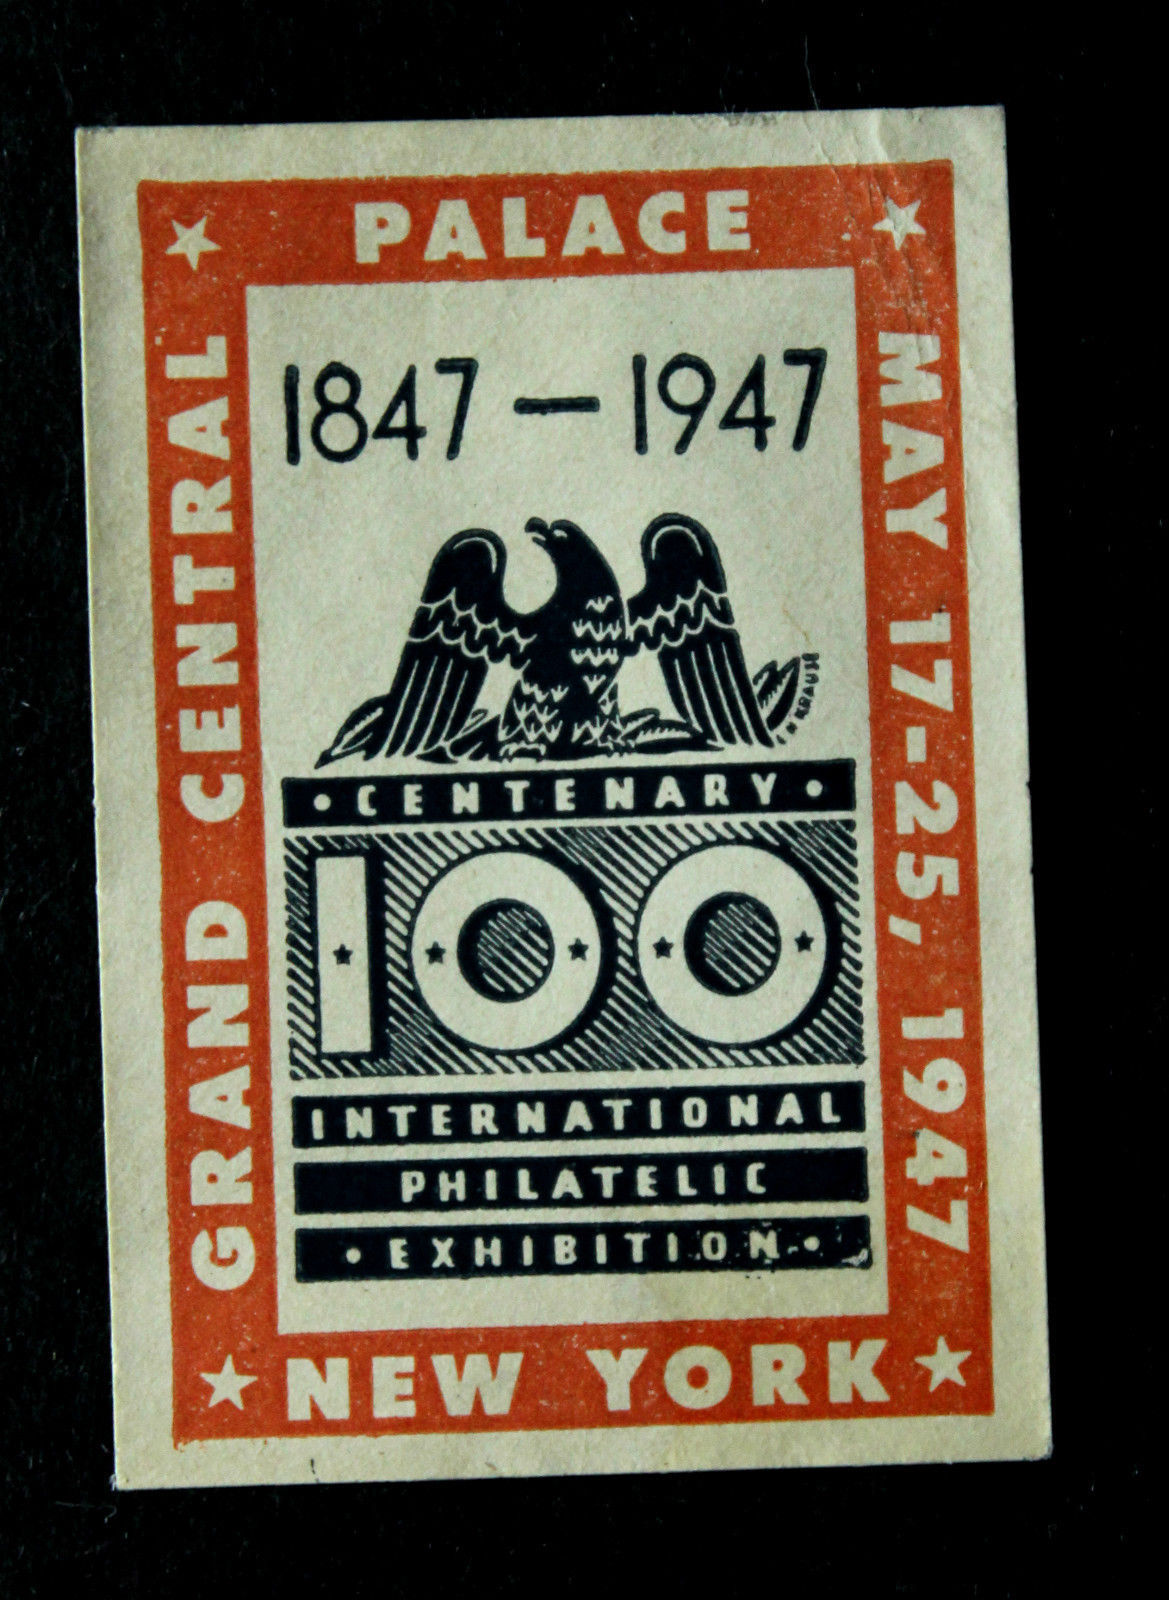 100 Int'l Philatelic Grand Ctrl Palace New York Poster Stamp  May 17-25, 1947